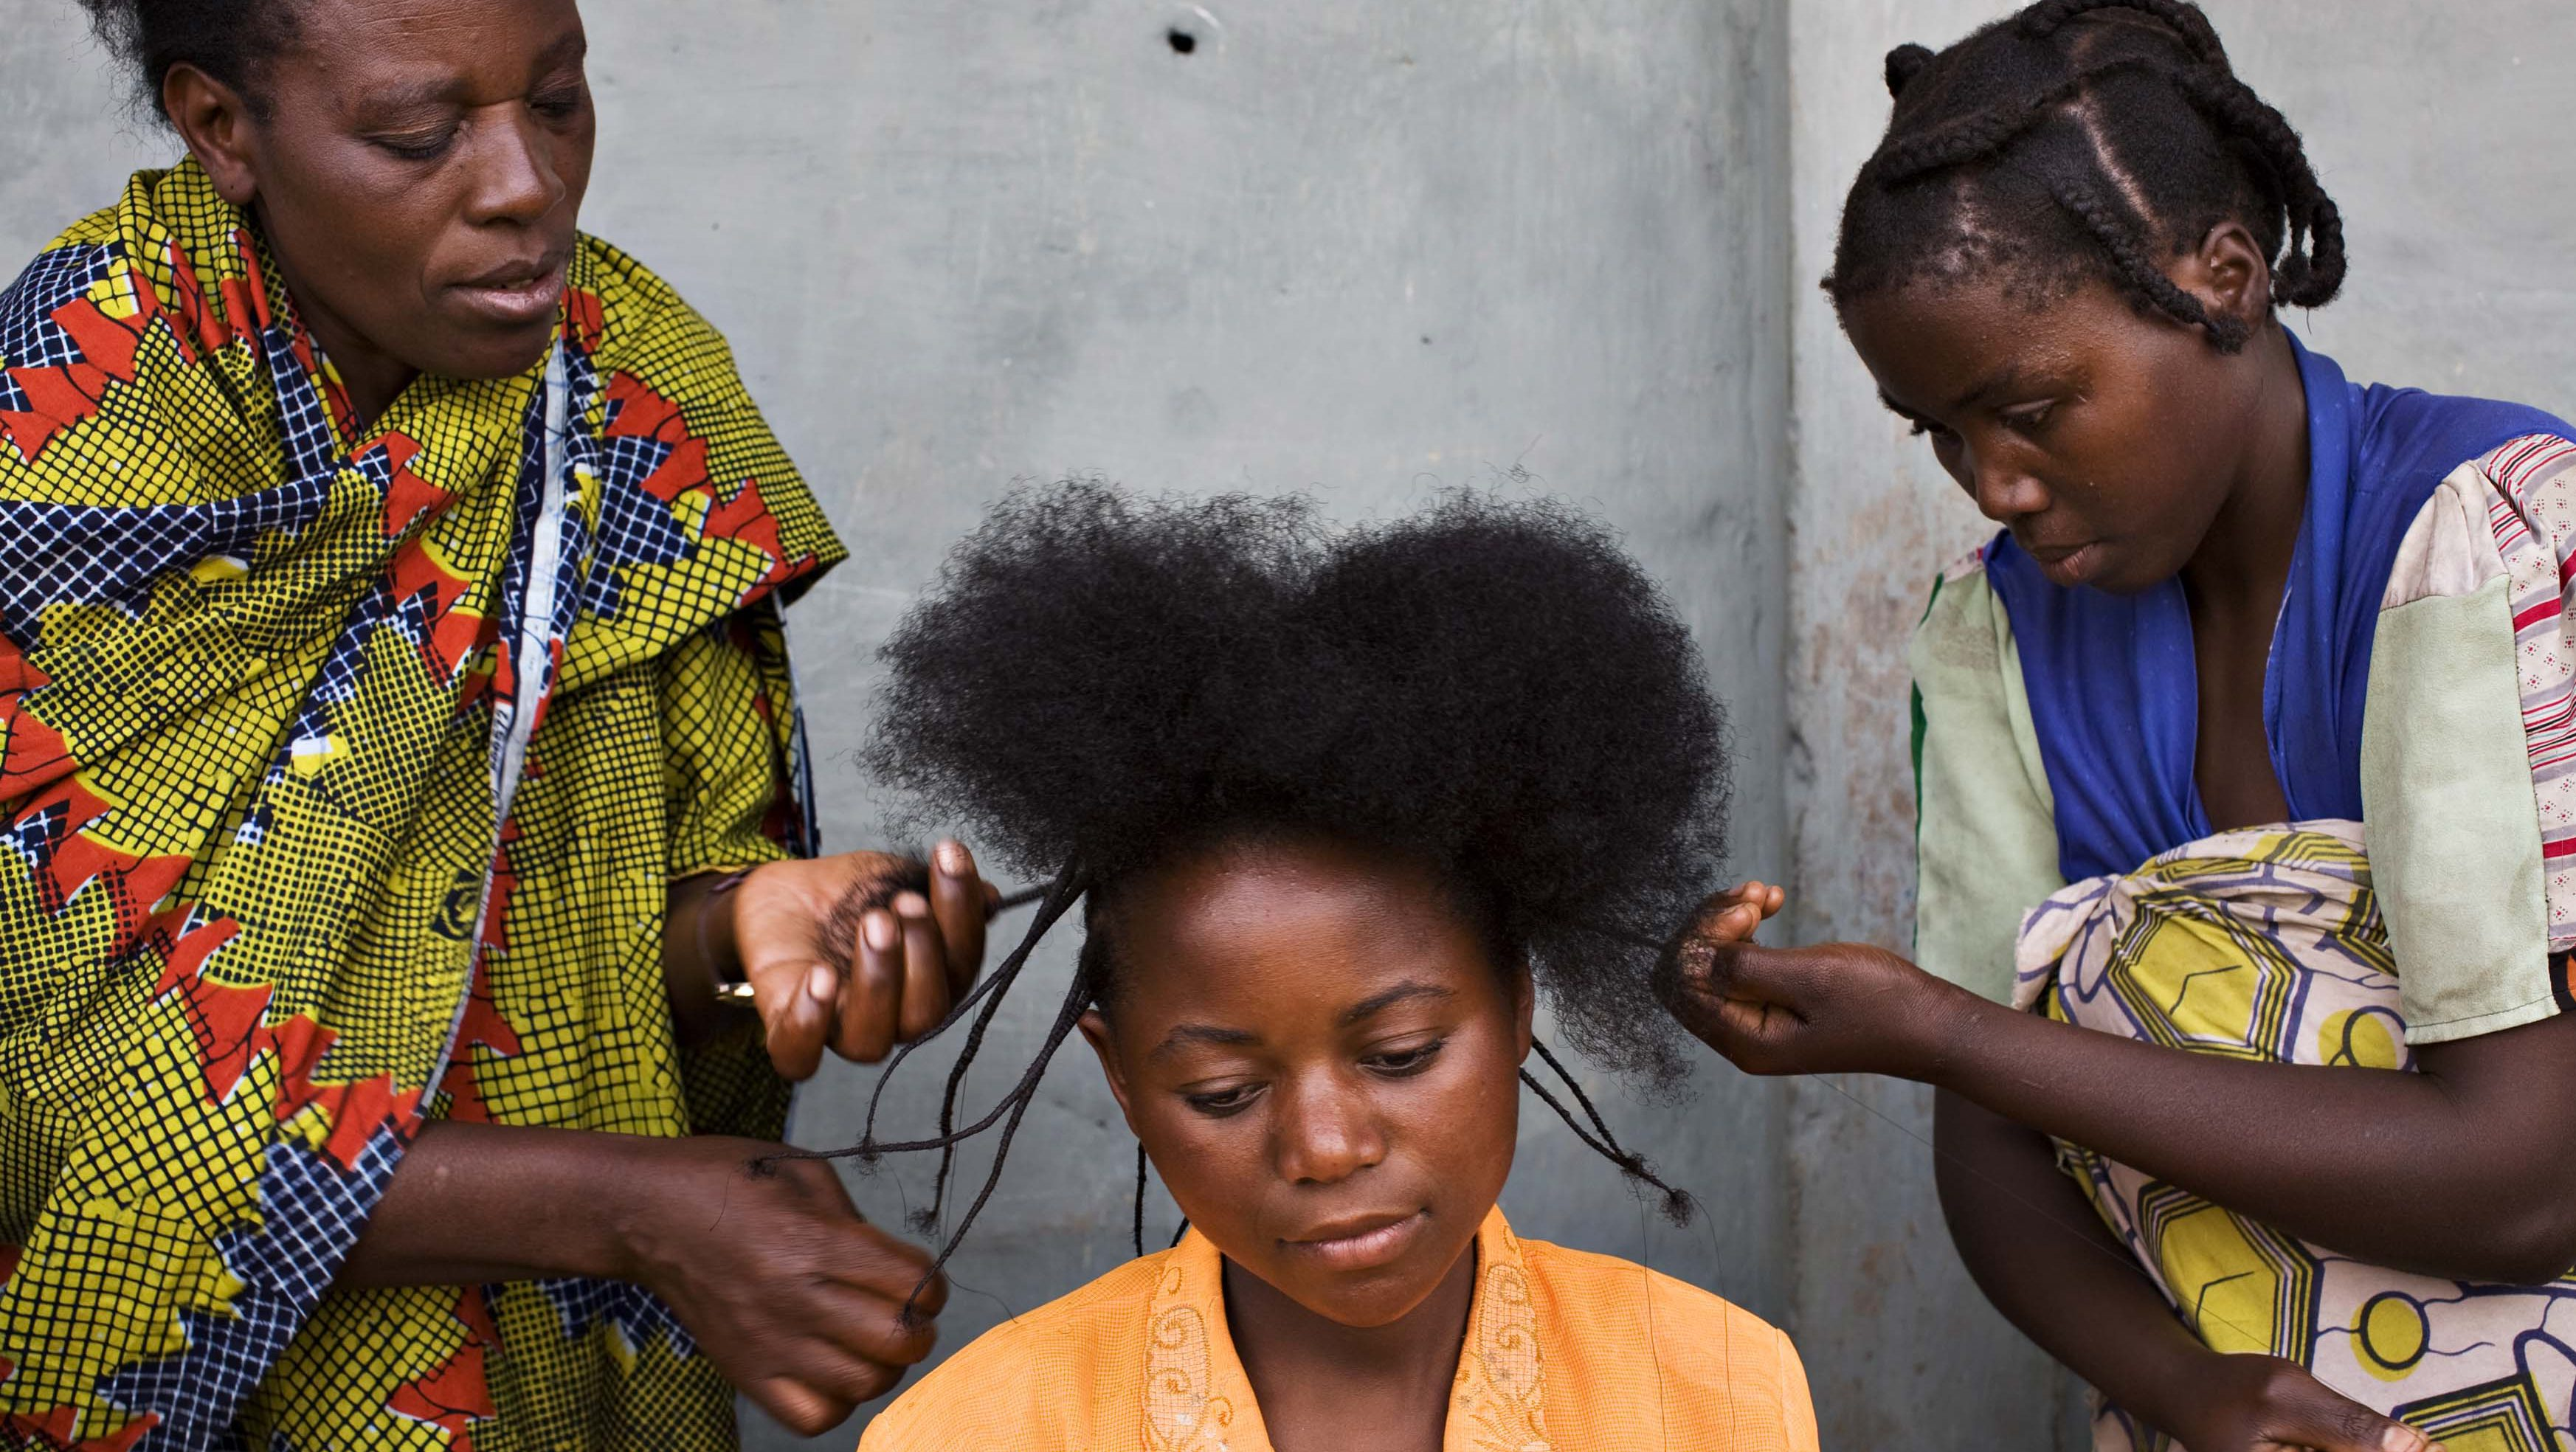 Black Hair Myths From Slavery To Colonialism School Rules And Good